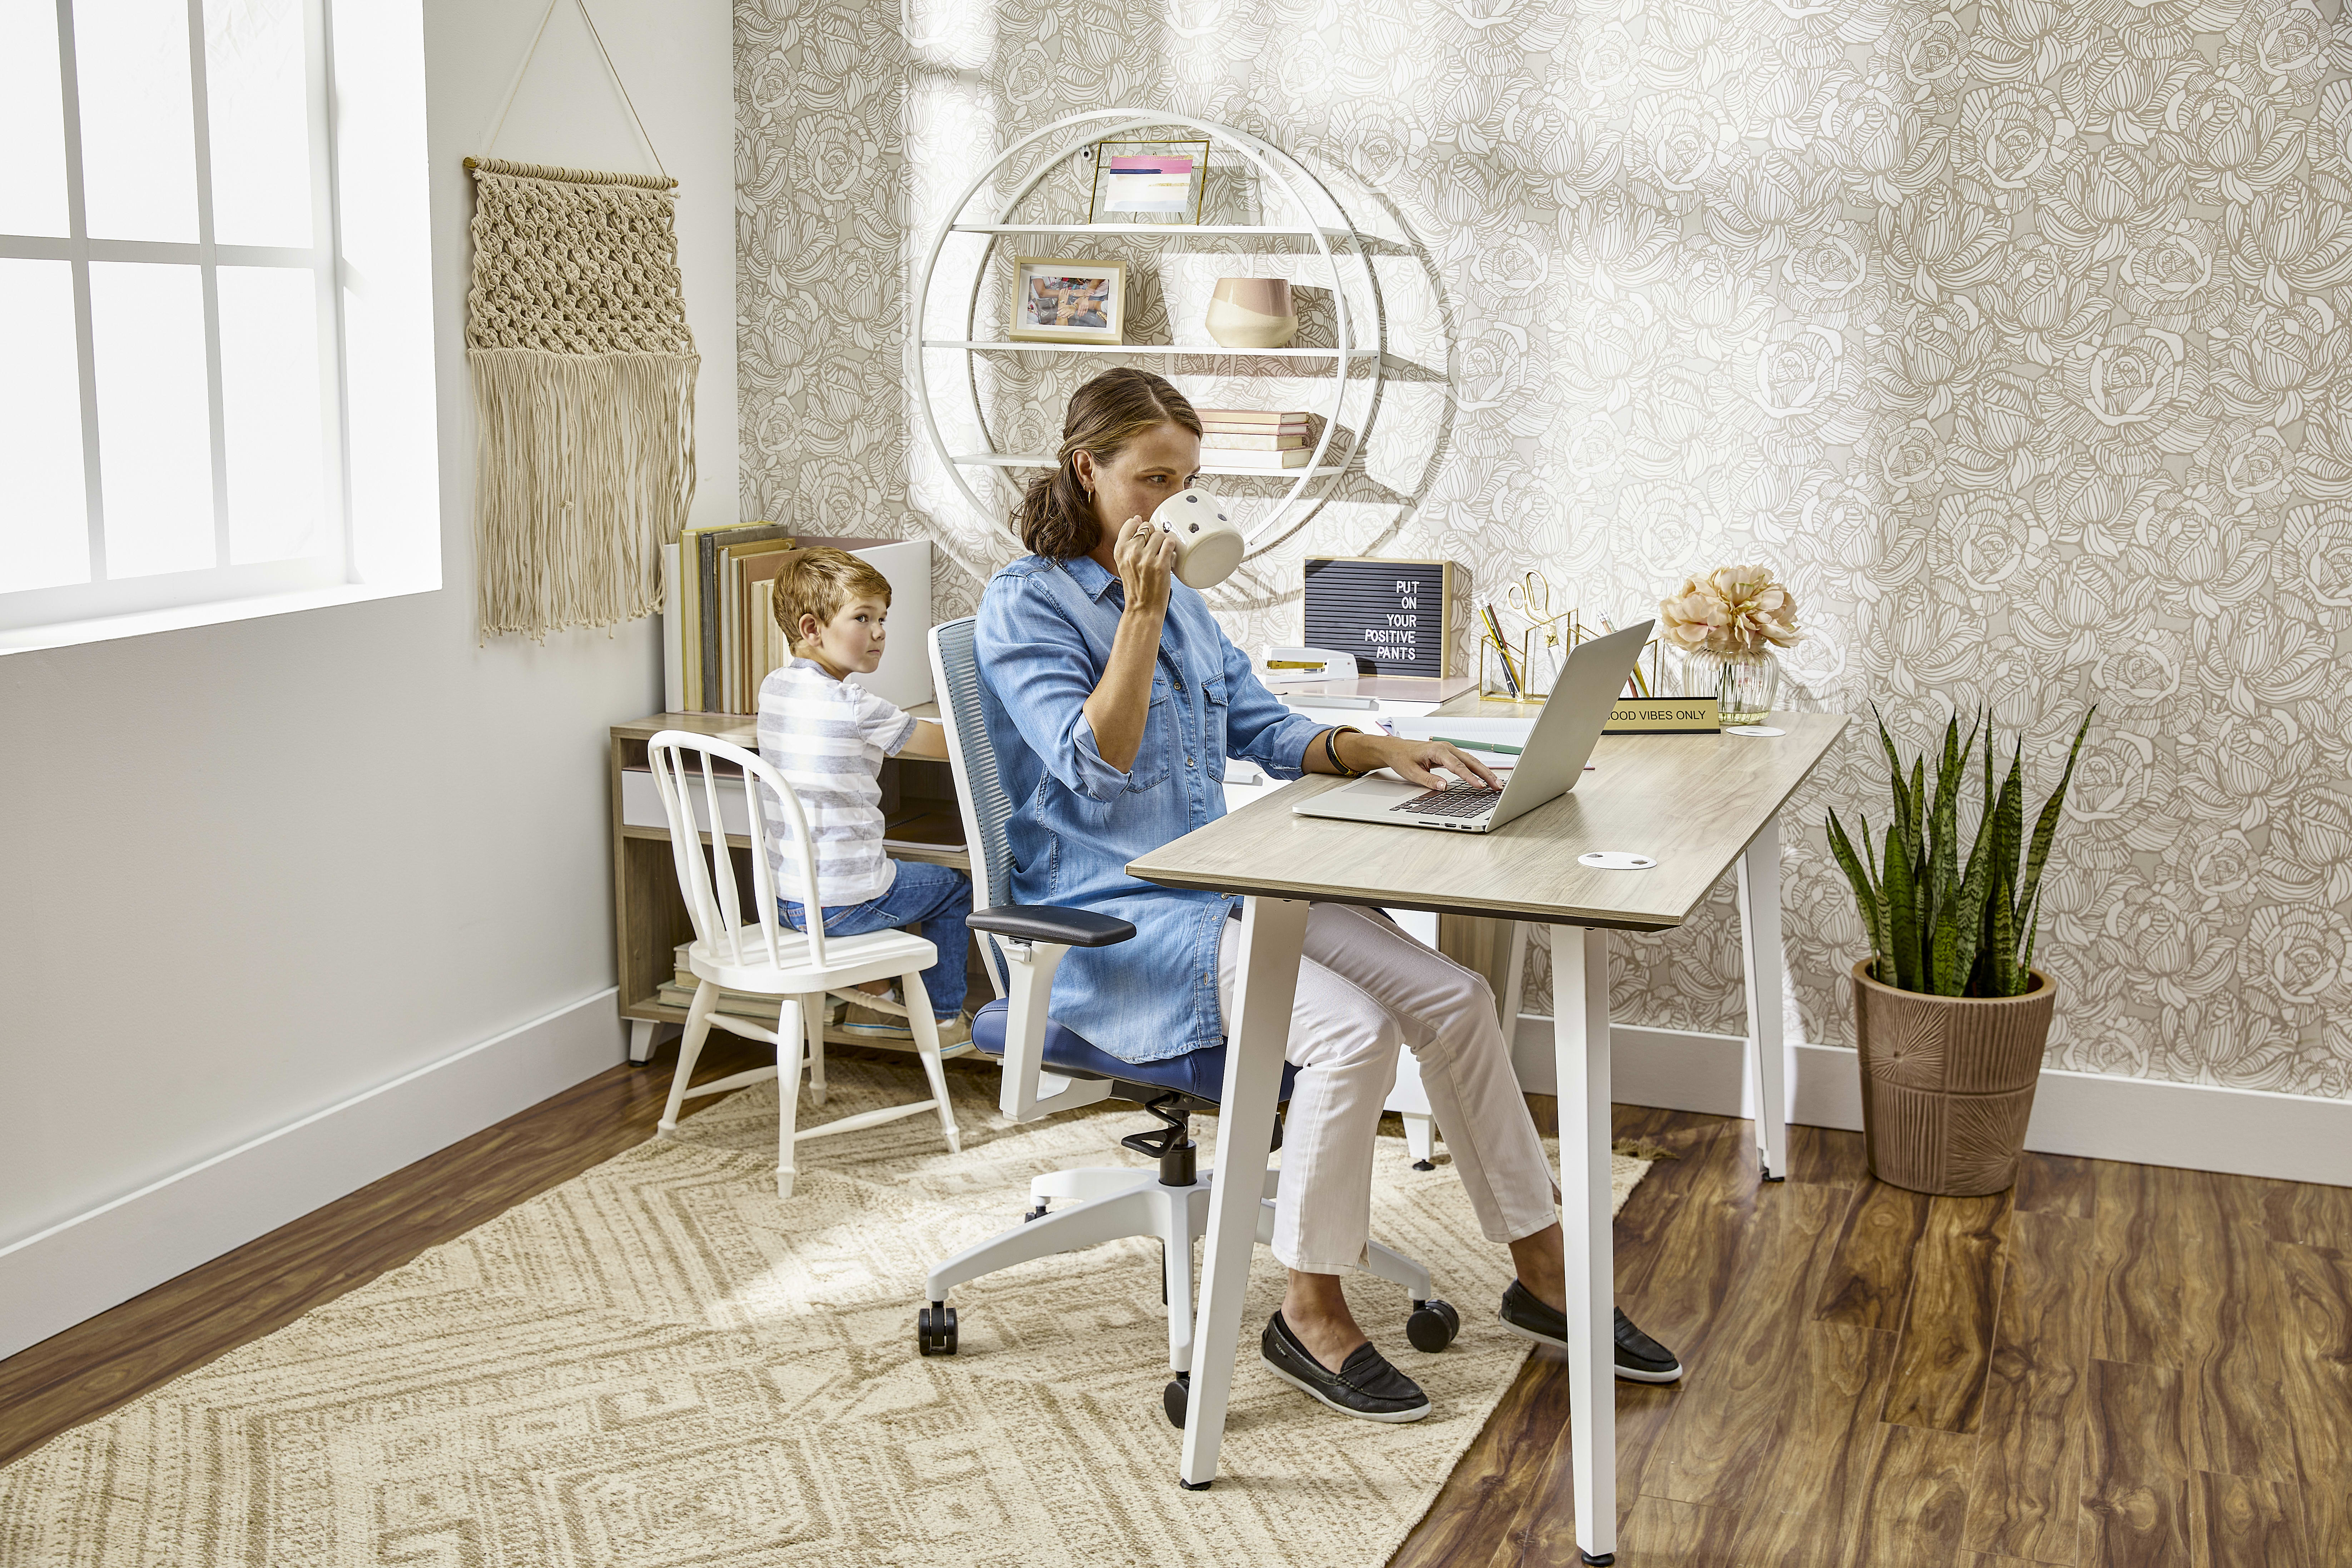 HON-Blog-3-Work-from-Home-Tips-001